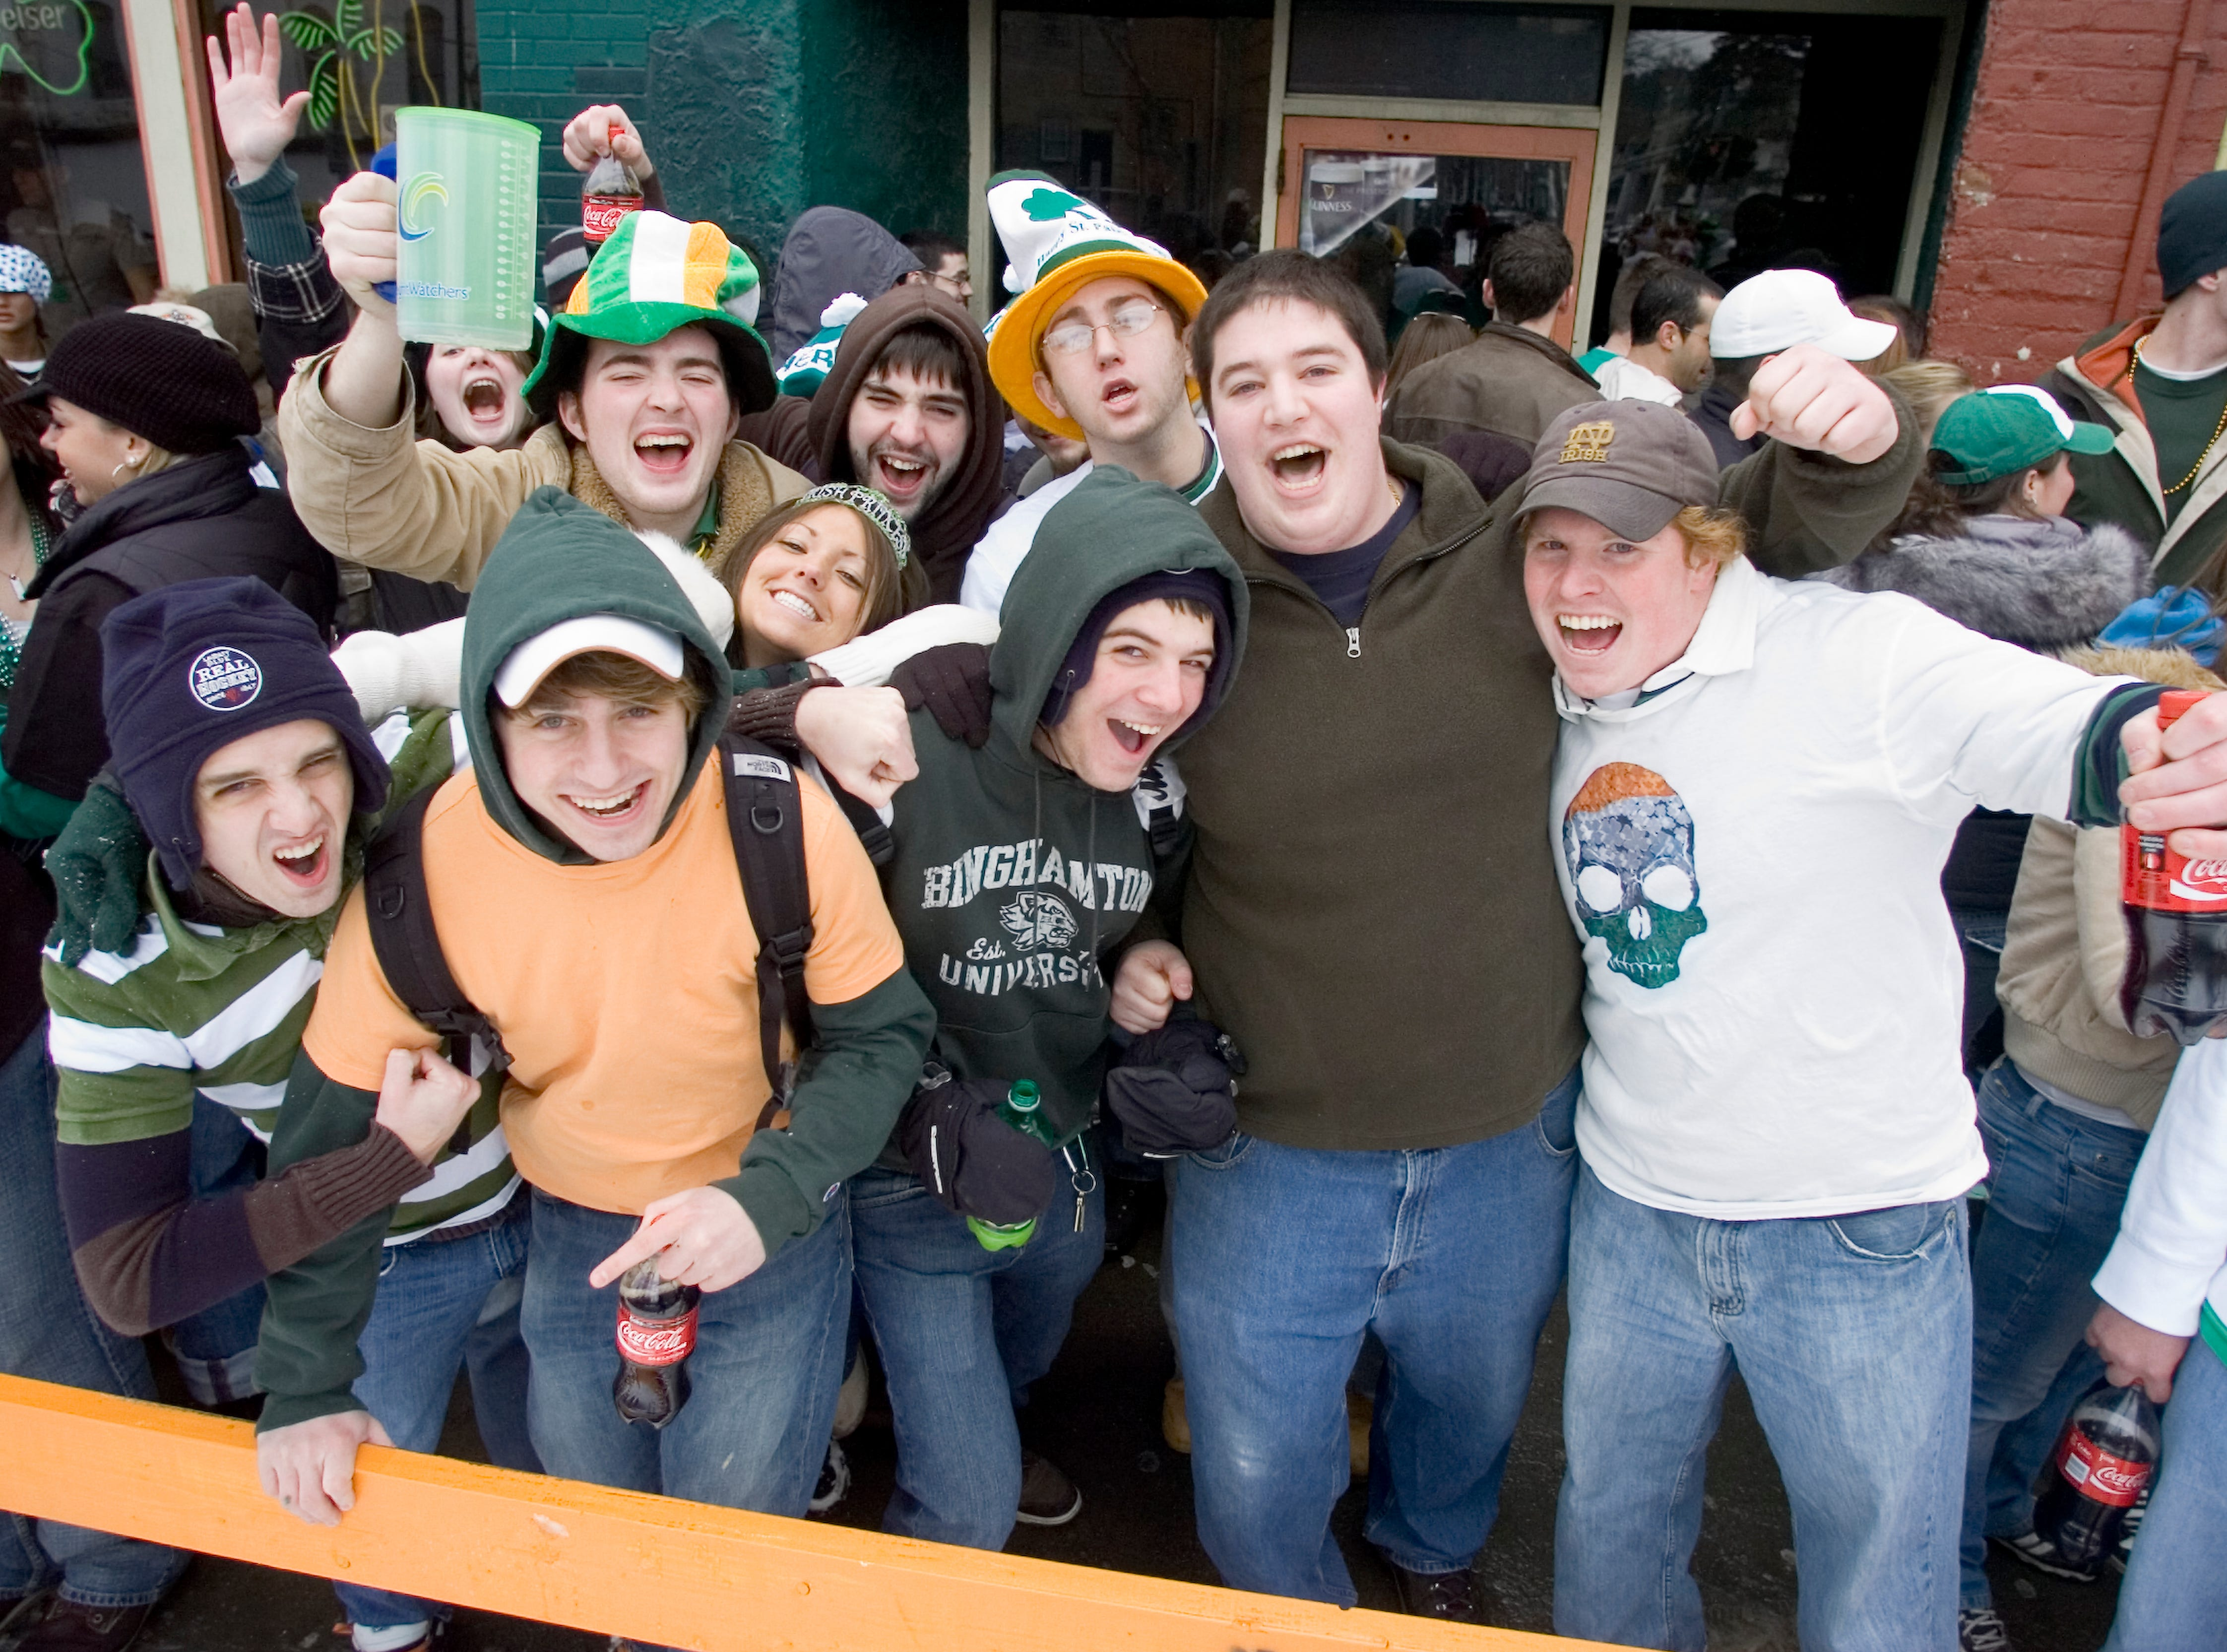 Parade goers gather on Main Street on Saturday for the St. Patrick's Day Parade in Binghamton.